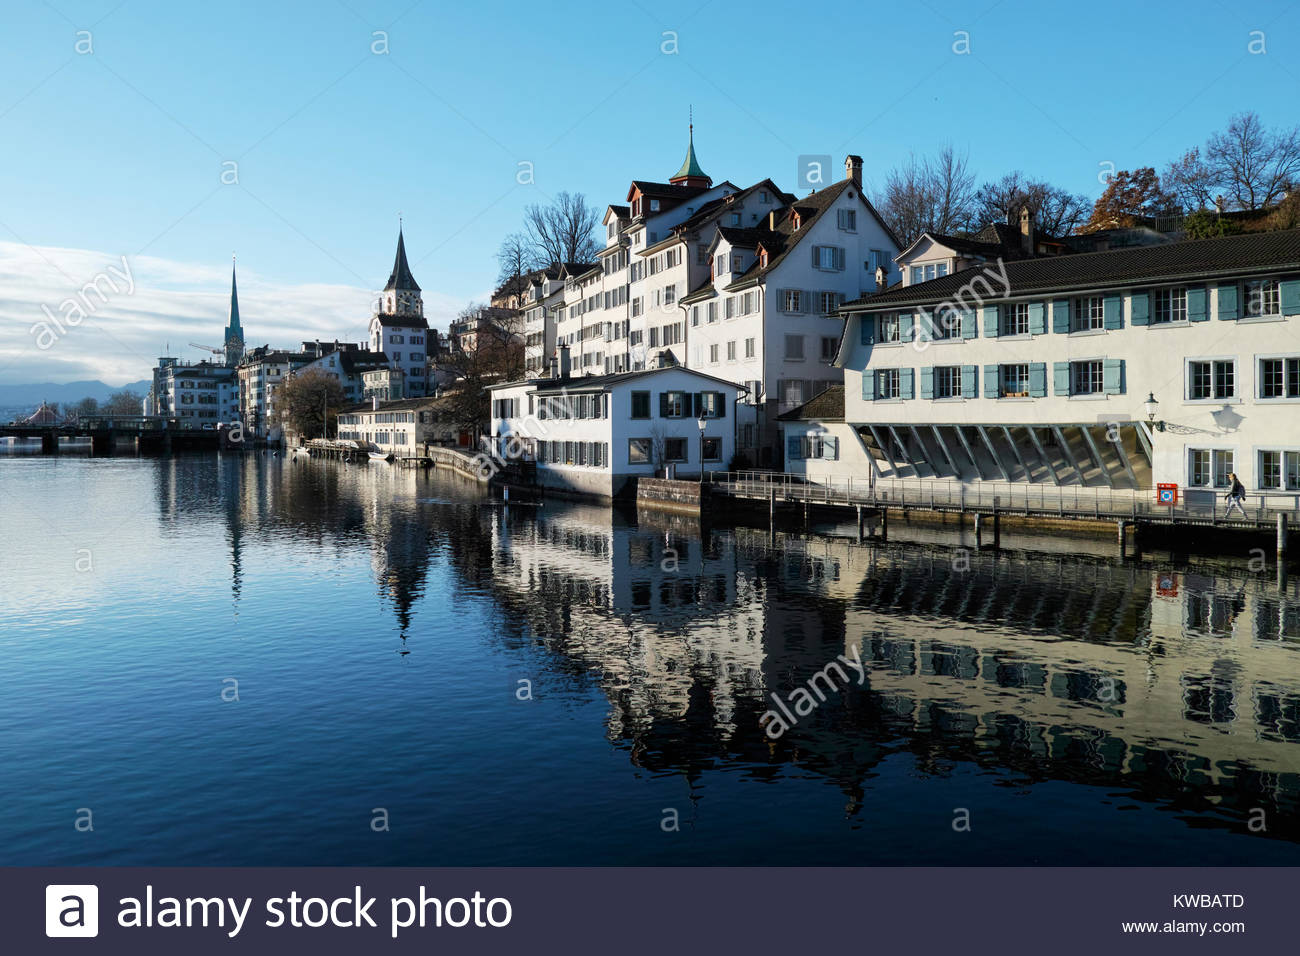 Cityscape of Zurich Old Town reflected in the Limmat river.  Switzerland. - Stock Image